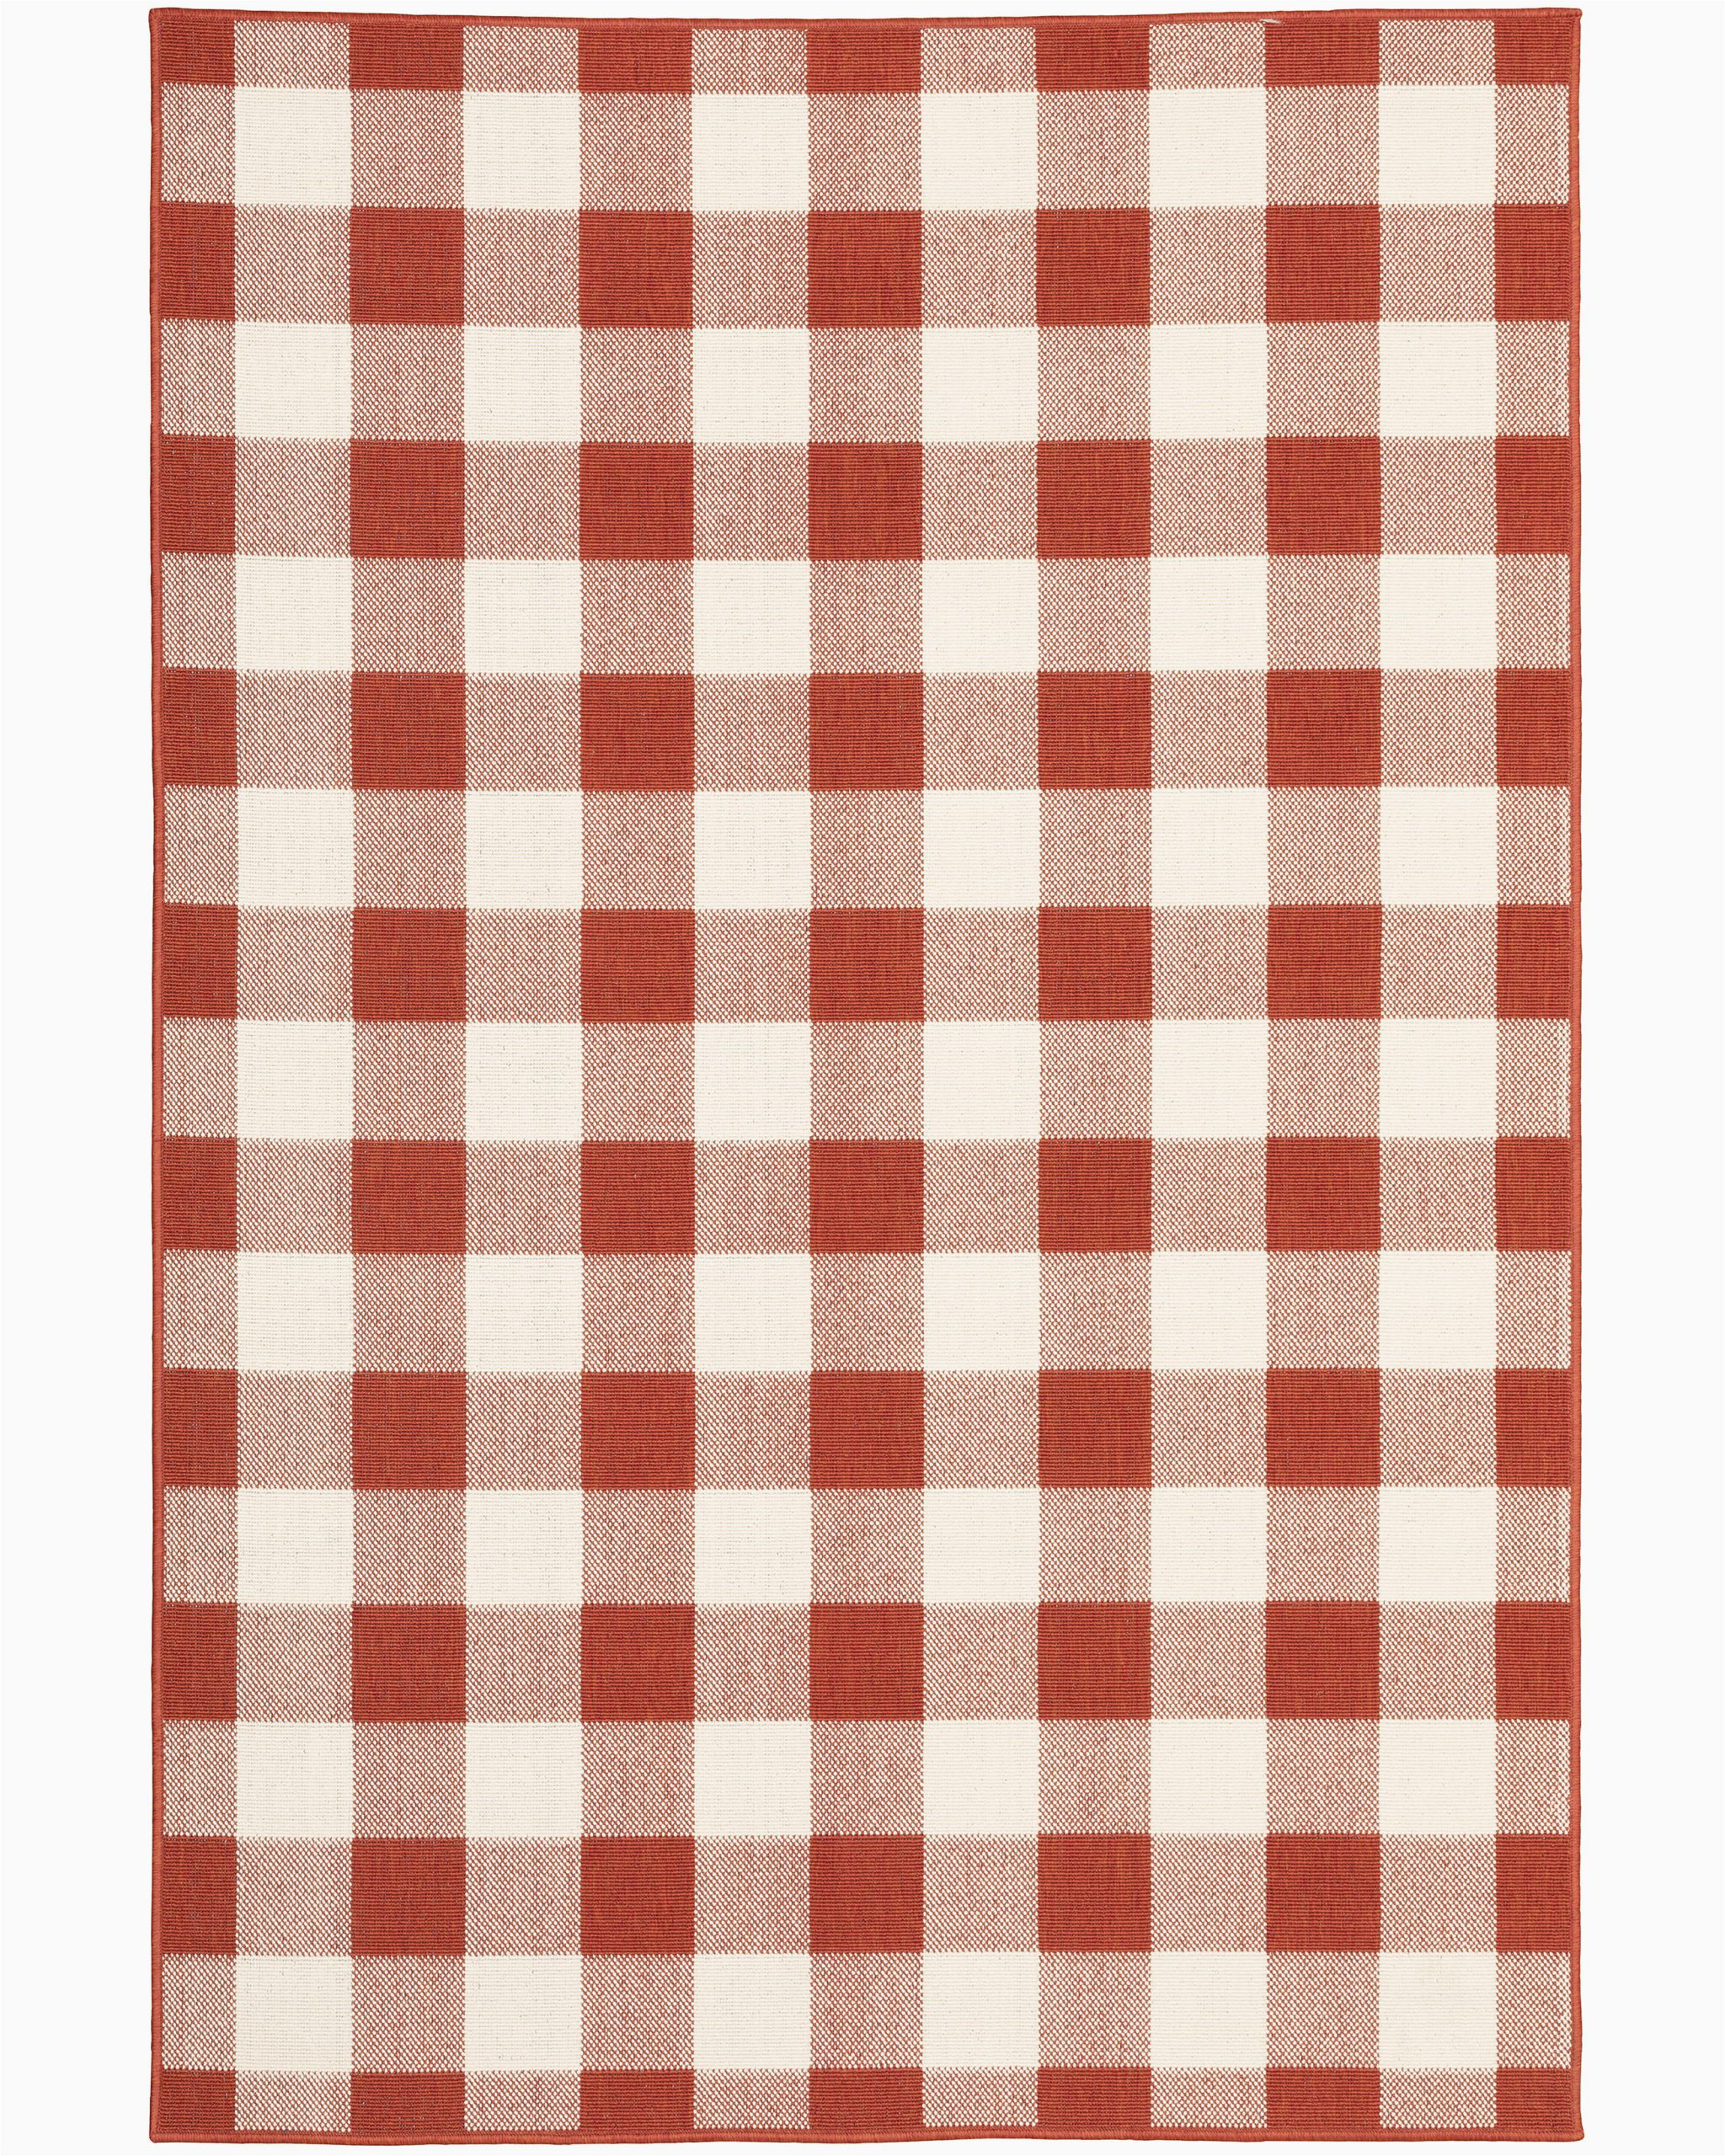 Red and Black Buffalo Check area Rug Leighty Plaid Hooked Red Ivory Indoor Outdoor area Rug